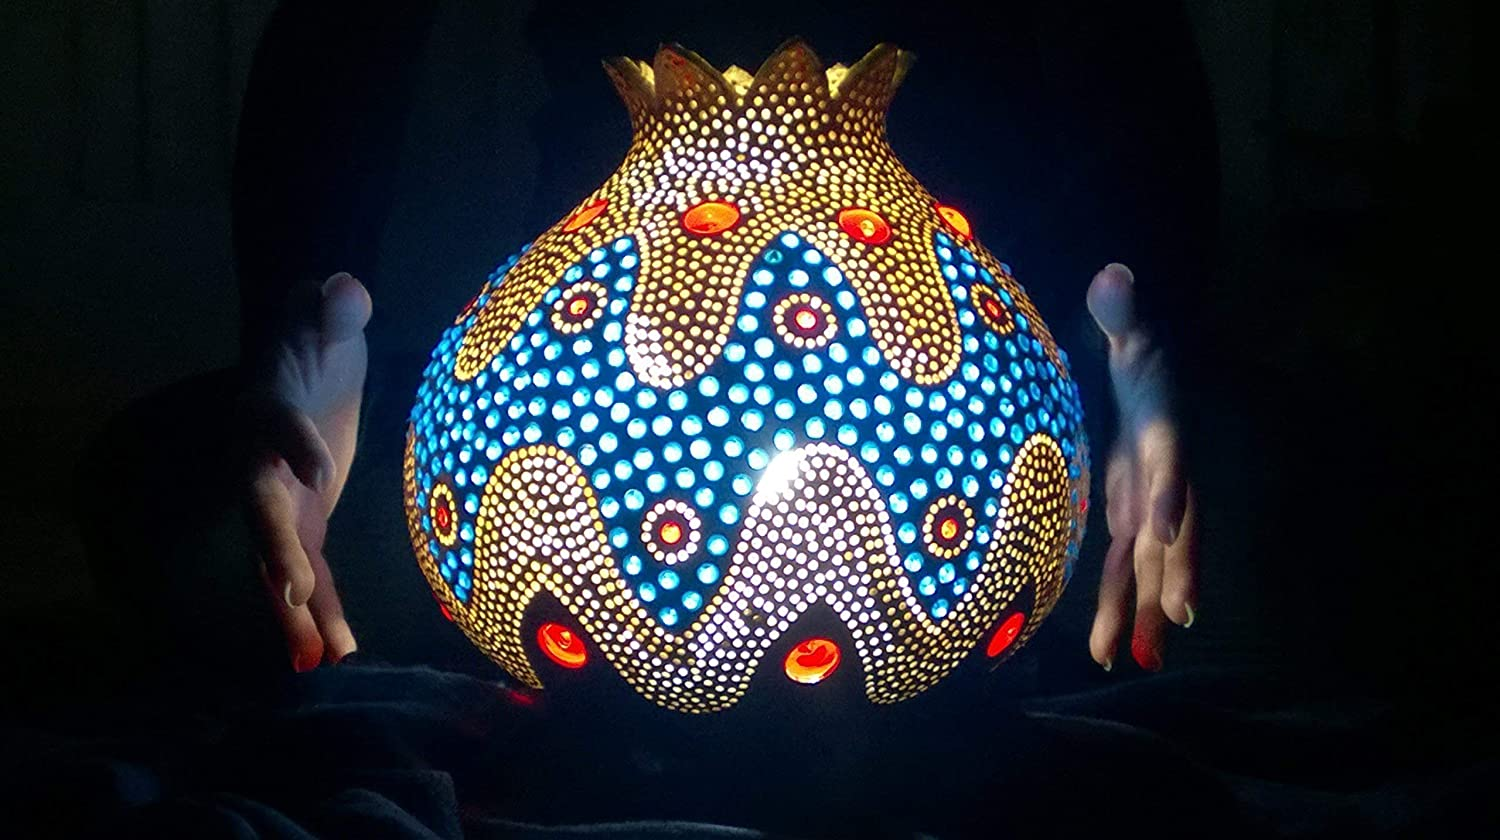 Now Larger Size Best Seller A Bohemian Enigma | Gourd Lamp Night Light Unique Interior Home Decor Birthday Gift Idea